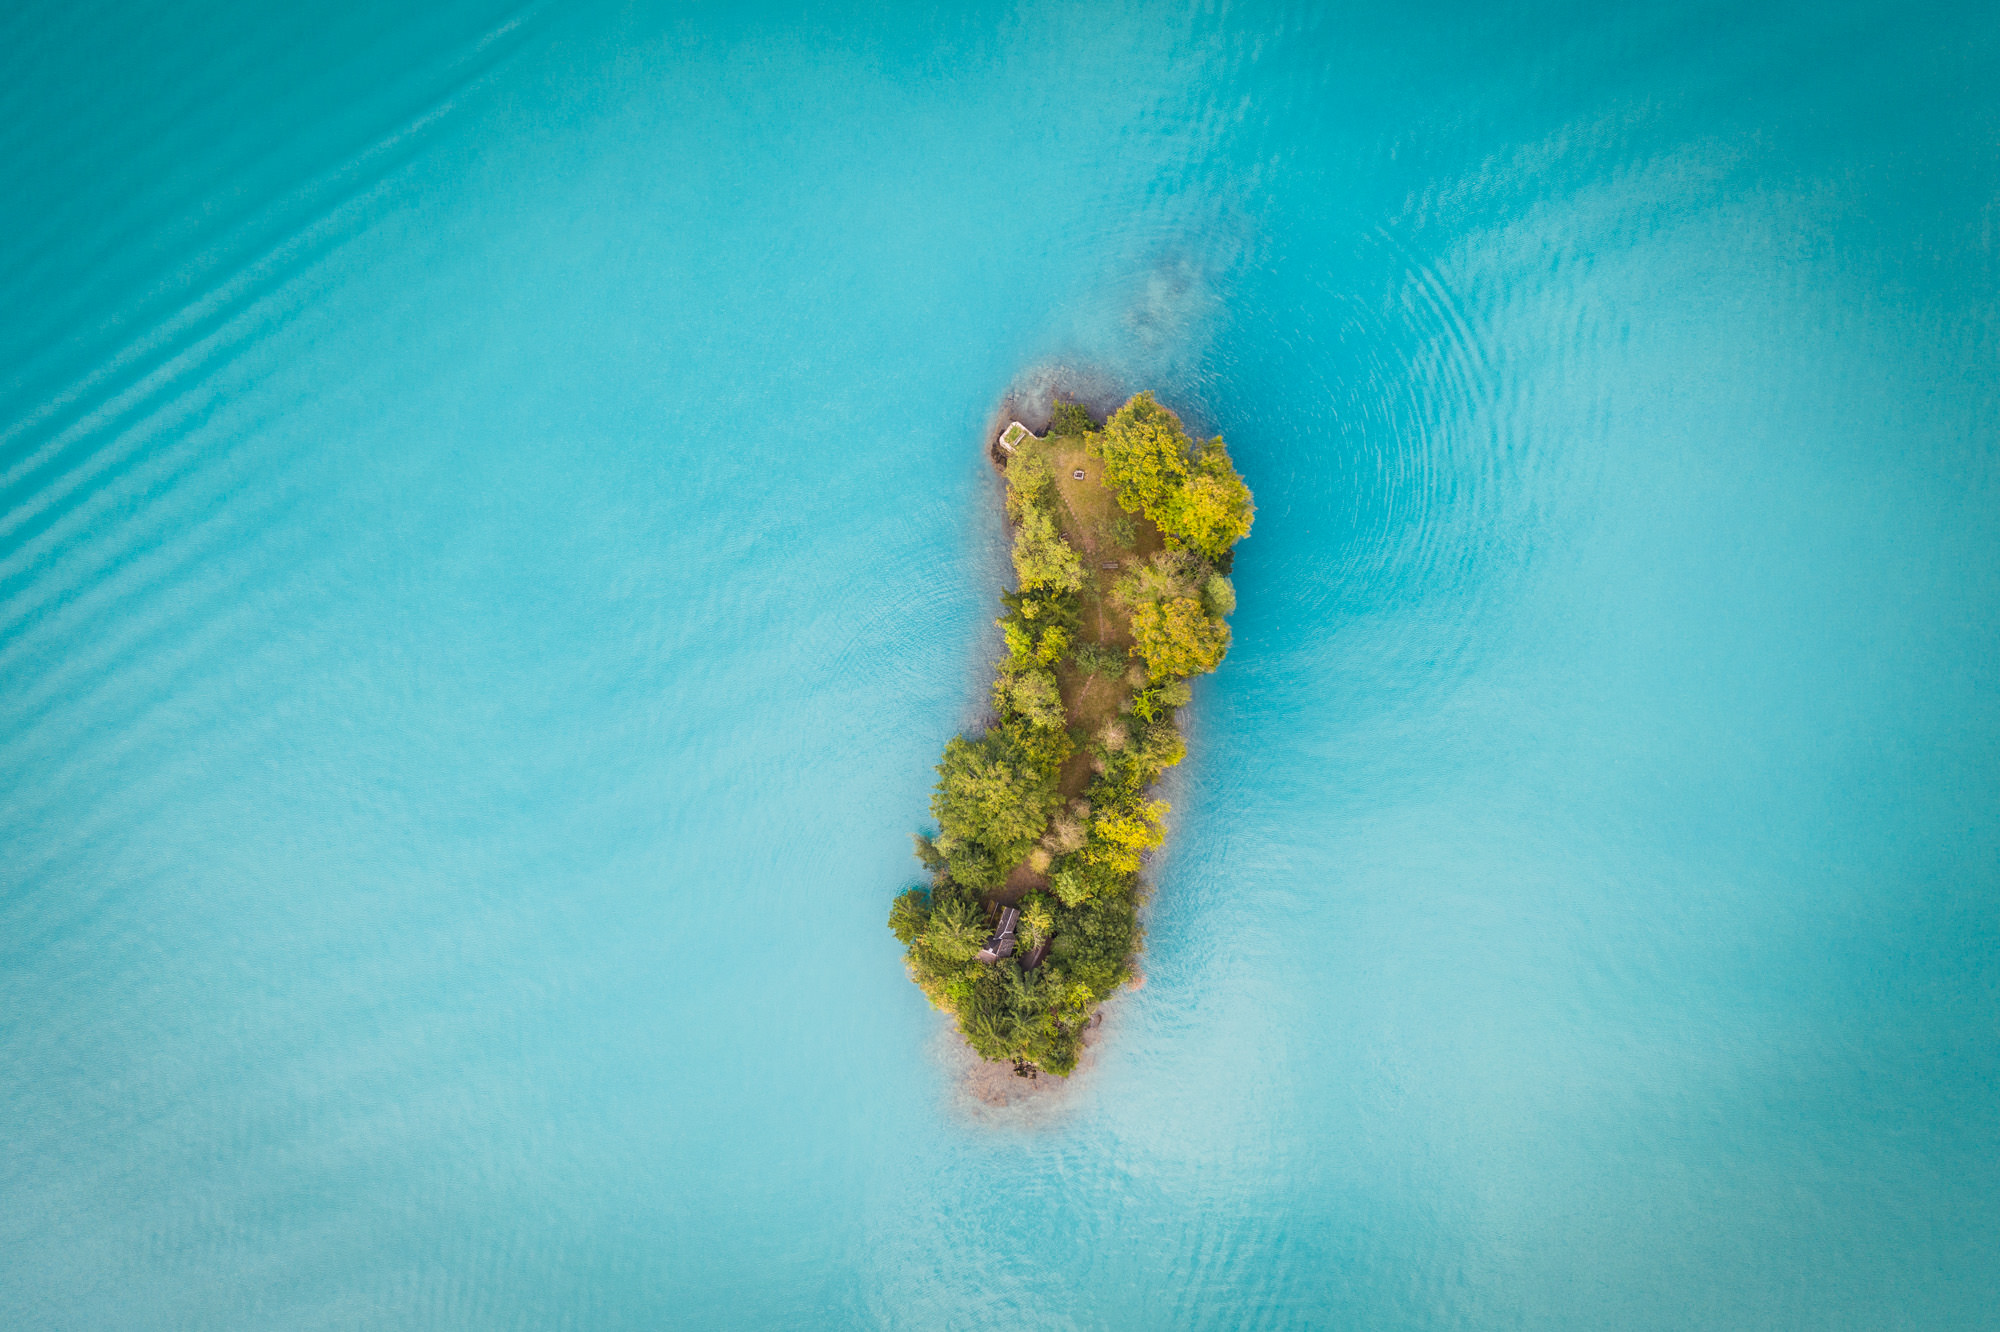 A small island from above in a lake with bright blue water